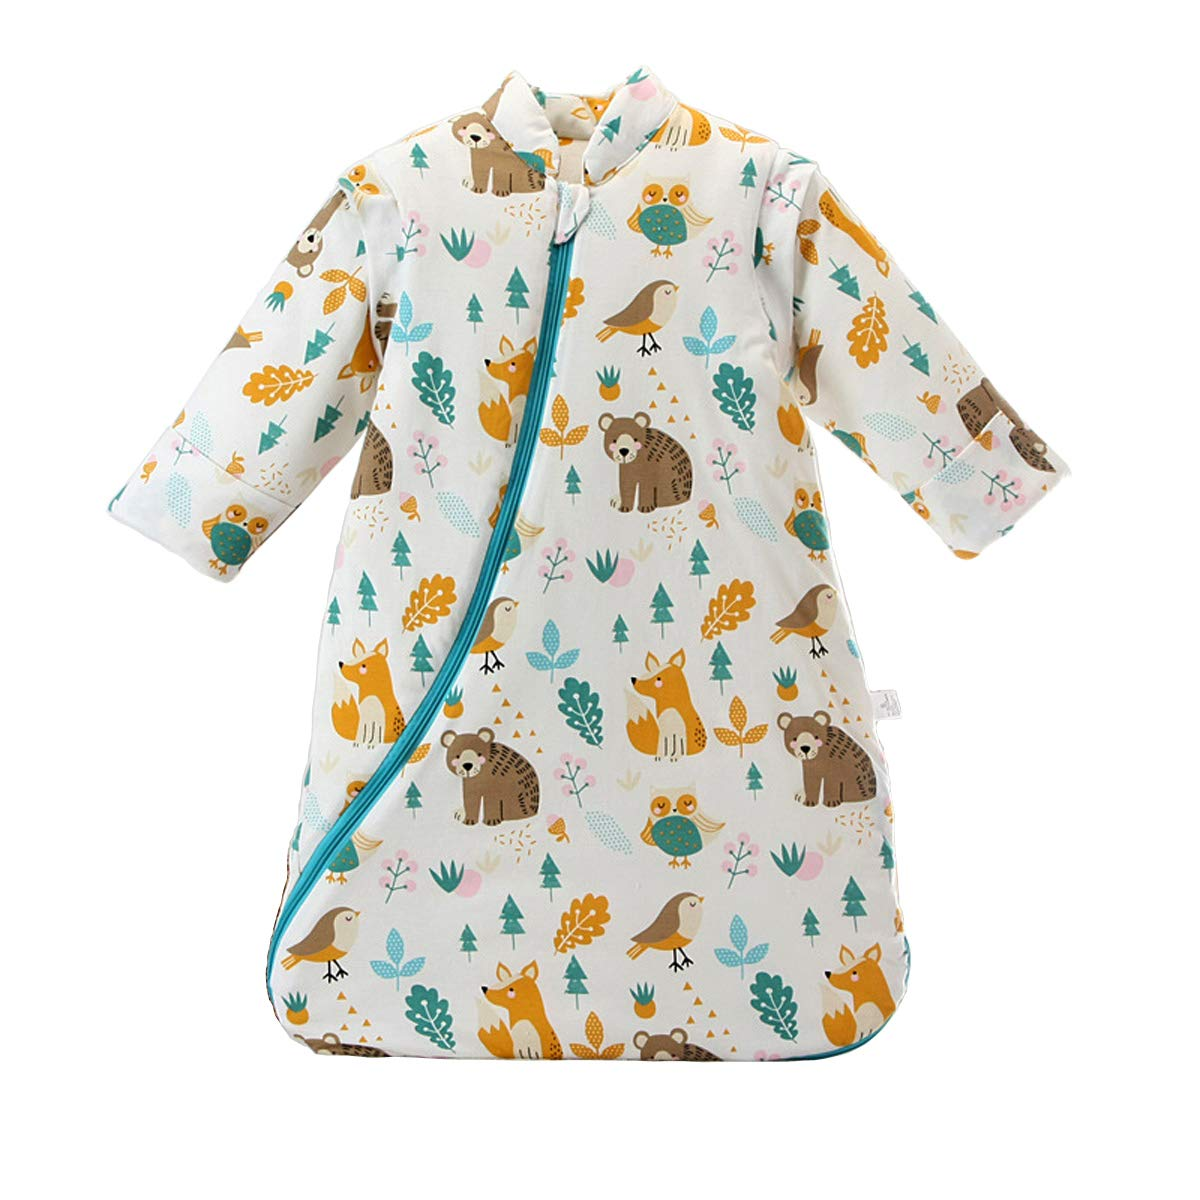 Baby Winter Sleeping Bag Kids Sleeping Bag 3.5 Tog Organic Cotton Sleeping Bag Various Sizes from Birth to 4 Years Old (S/0-5 Months, Animal World) MIKAFEN